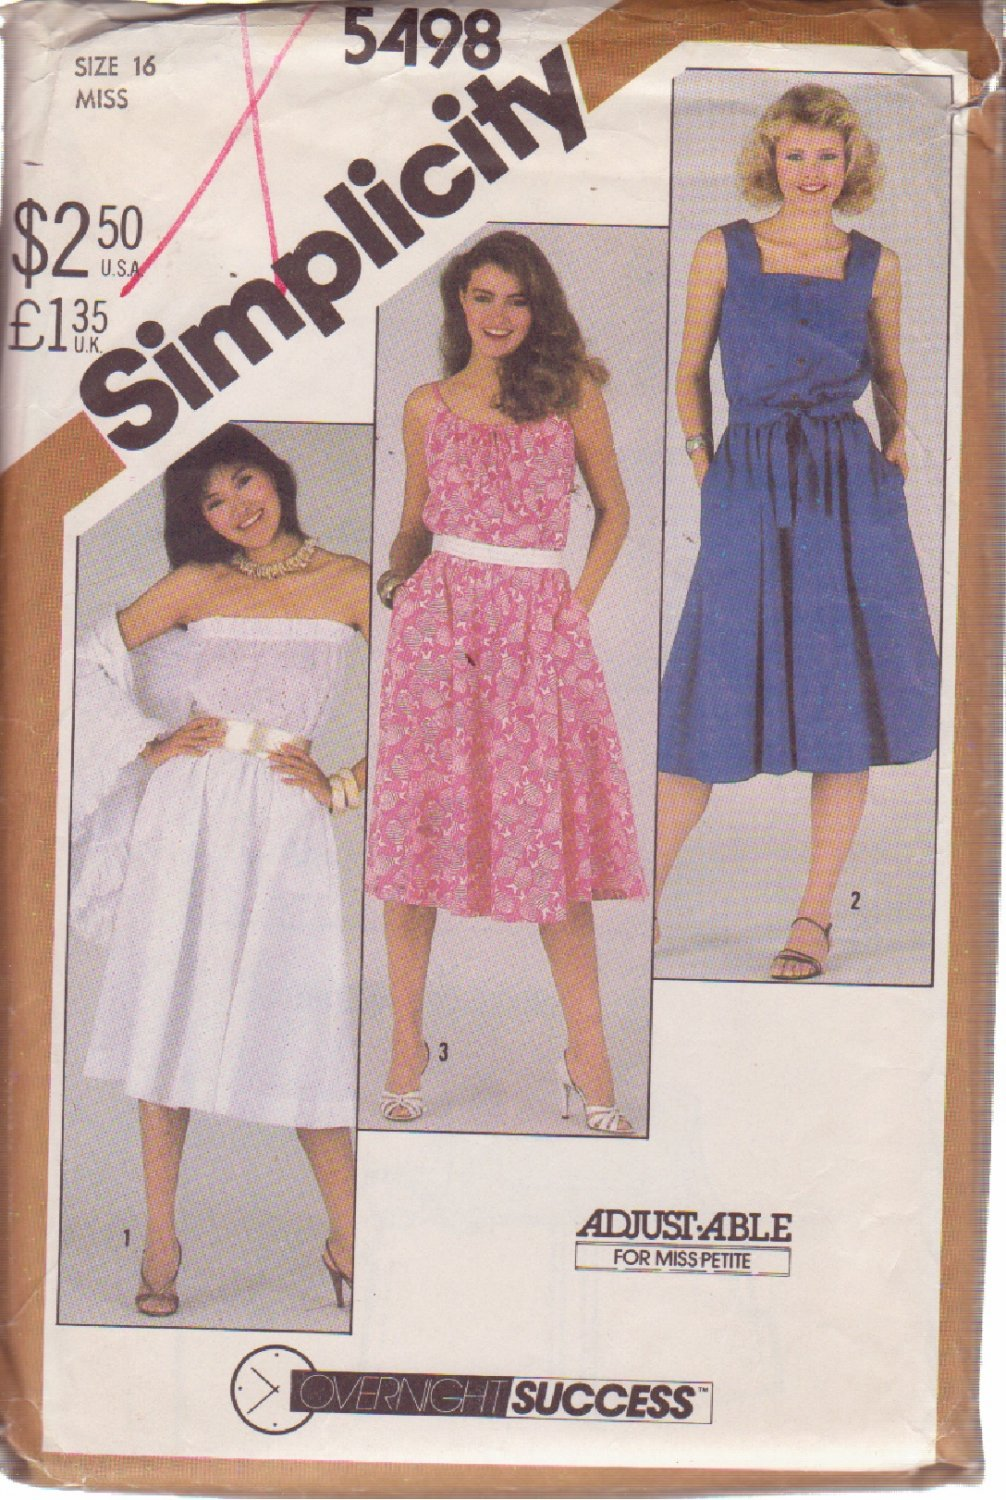 SIMPLICITY 5498 VINTAGE PATTERN MISSES' SUNDRESS IN 3 VARIATIONS, SHAWL SIZE 16